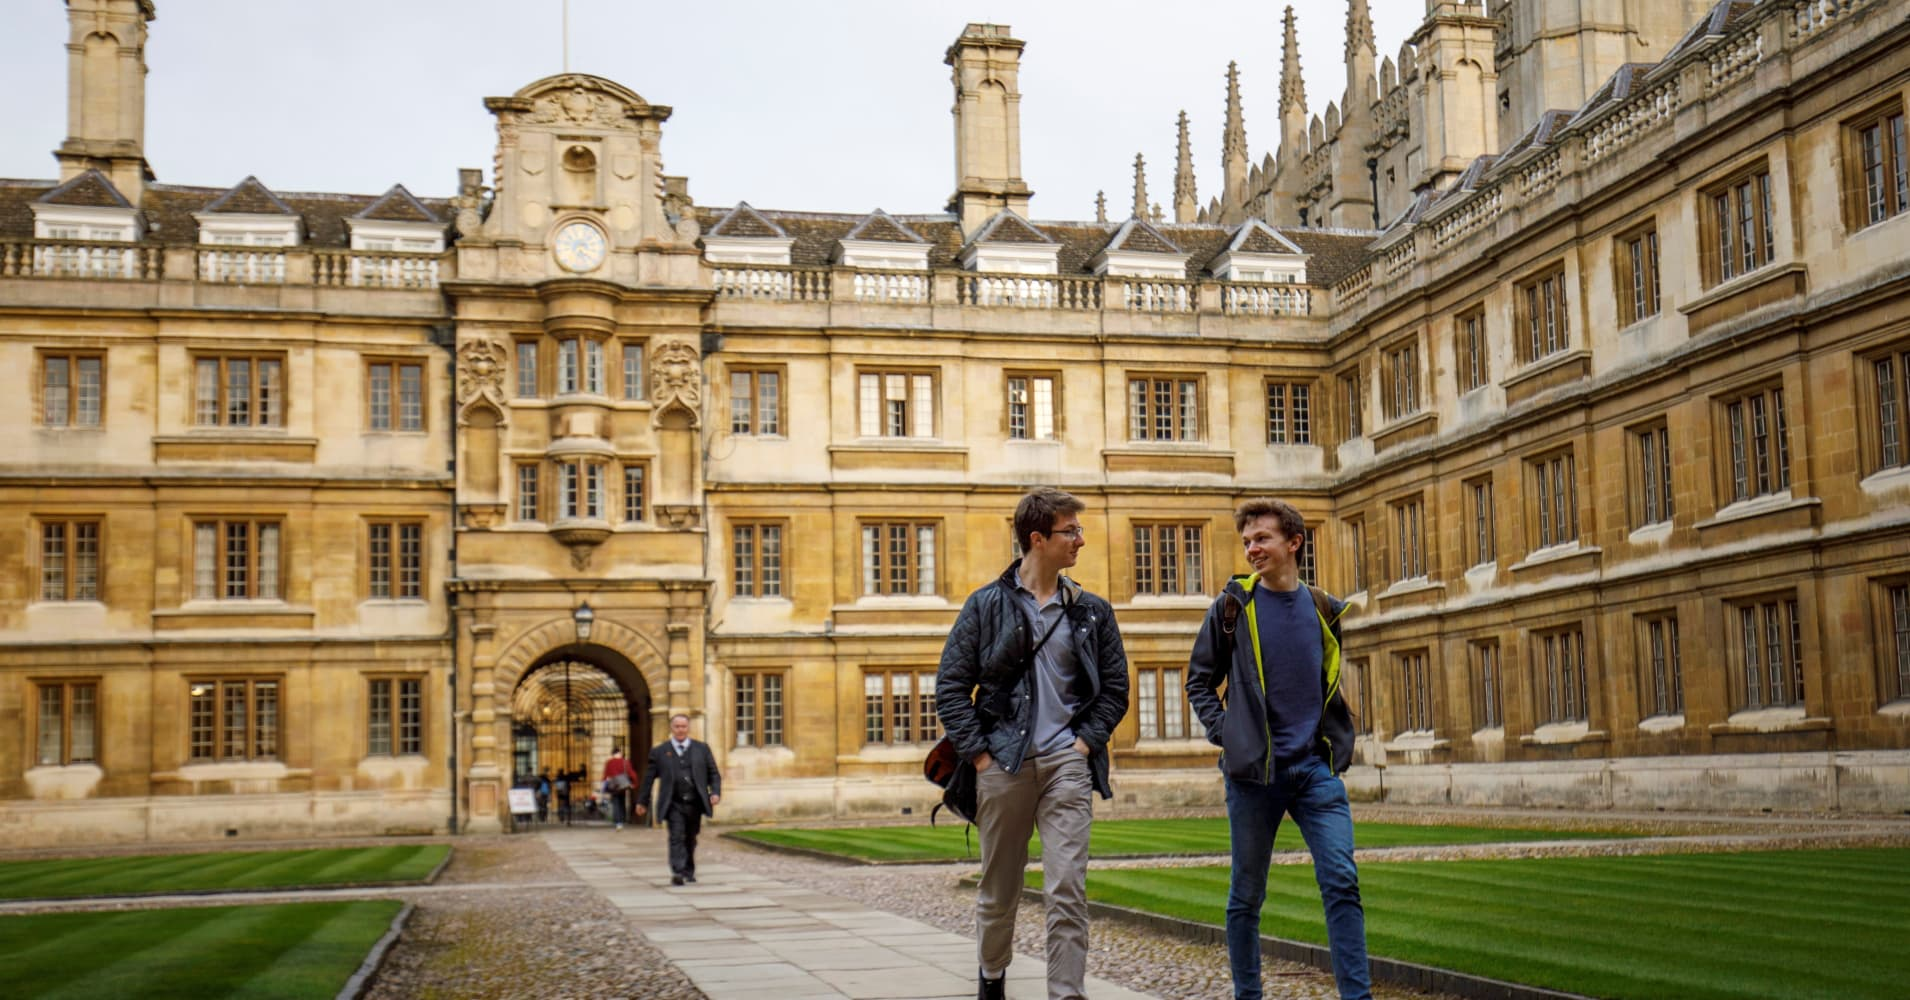 Students walk through Cambridge University in Cambridge, east of England, on March 14, 2018.